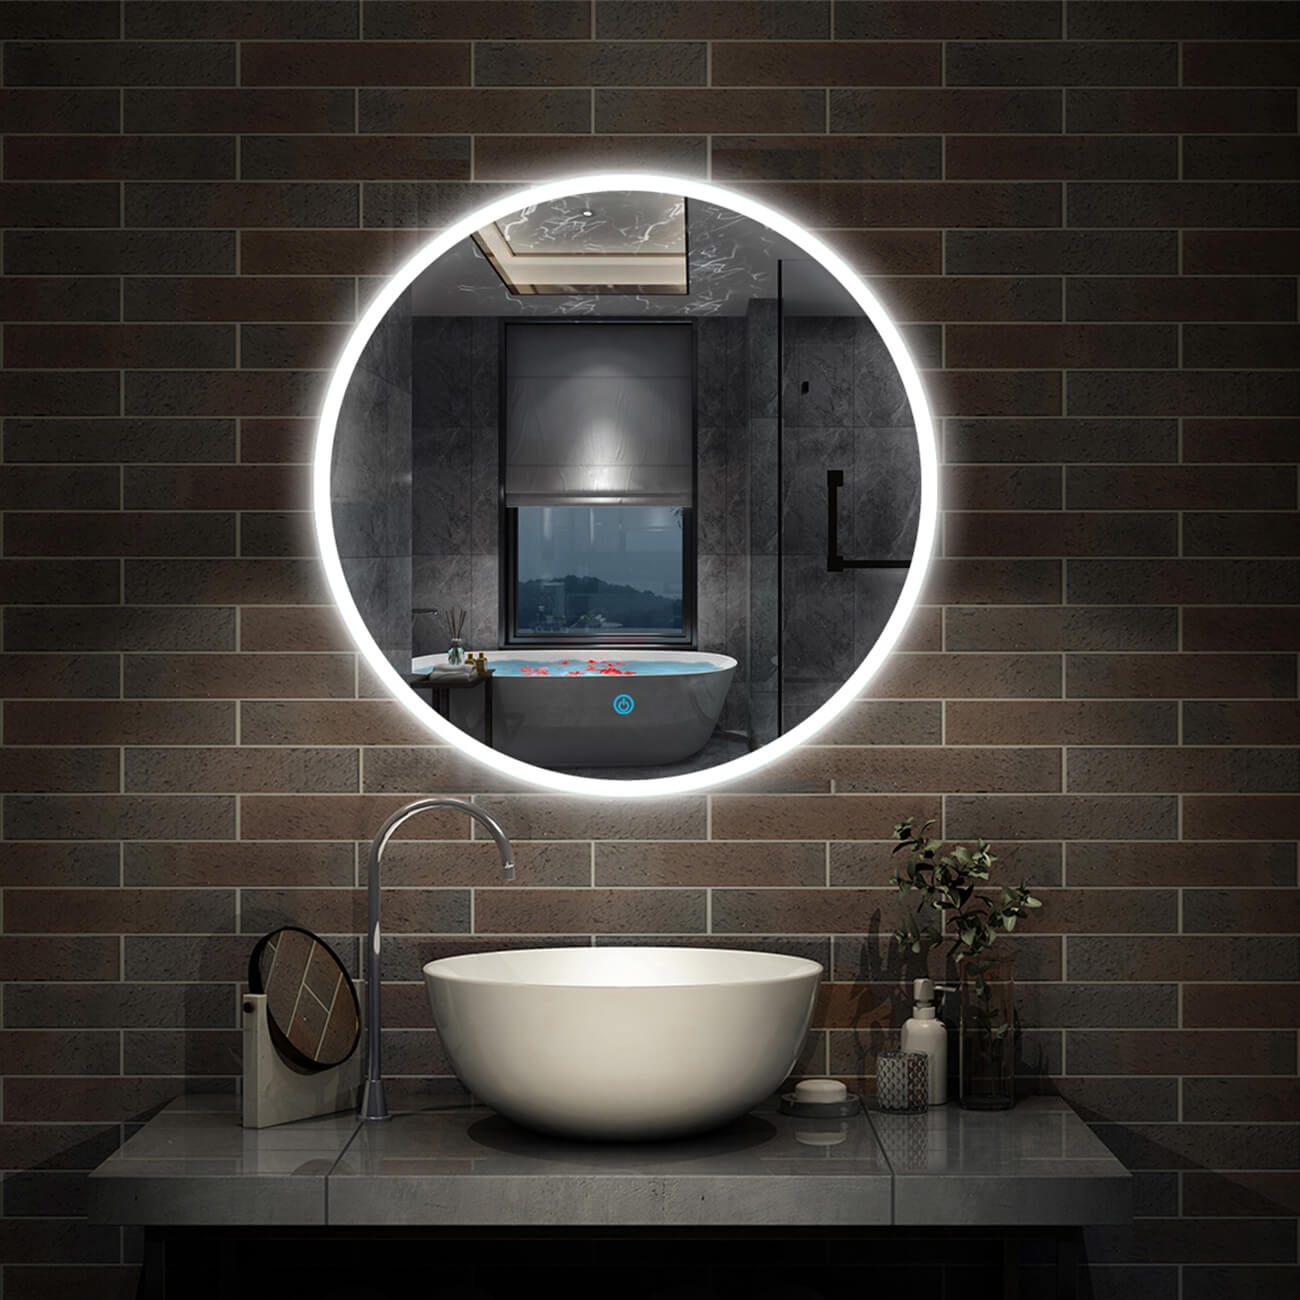 Picture of: Round Led Bathroom Wall Mirror Demister Illuminated Light Up 600×600 Waterproof 5282368200260 Ebay